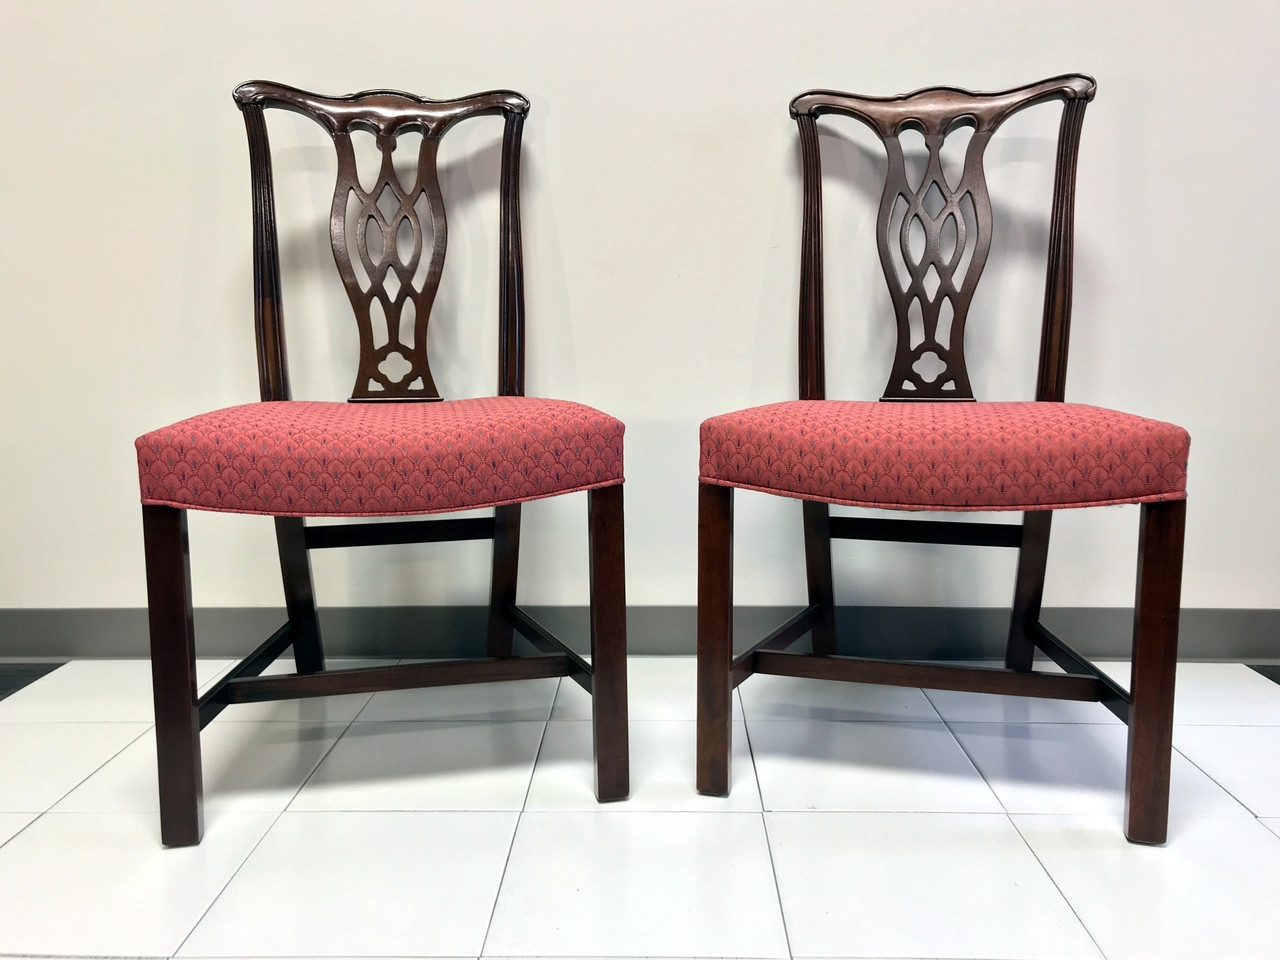 chippendale side chair. SOLD OUT - HICKORY CHAIR Mahogany Chippendale Straight Leg Dining Side Chairs Pair 1 Chair